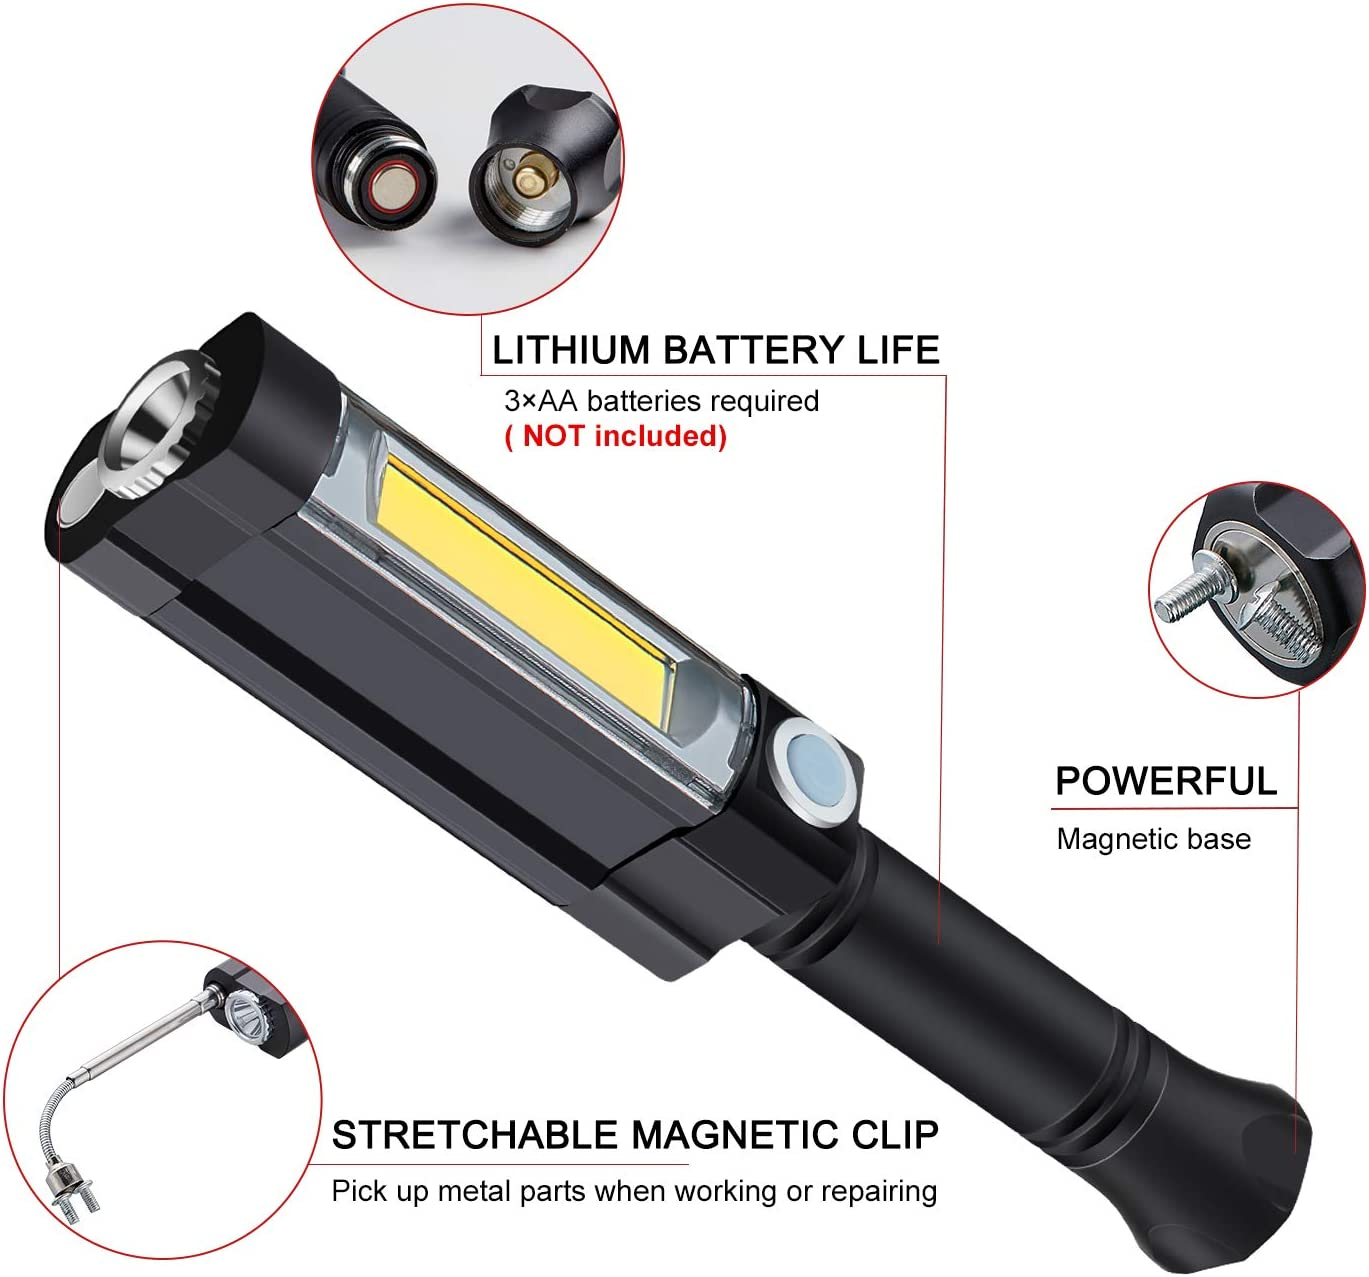 Work Light LED Flashlight Lantern Inspection Lamp Camping Light 3W COB LED Lamp Magnetic Base and Clip for Household Workshop Automobile Camping Emergency Use